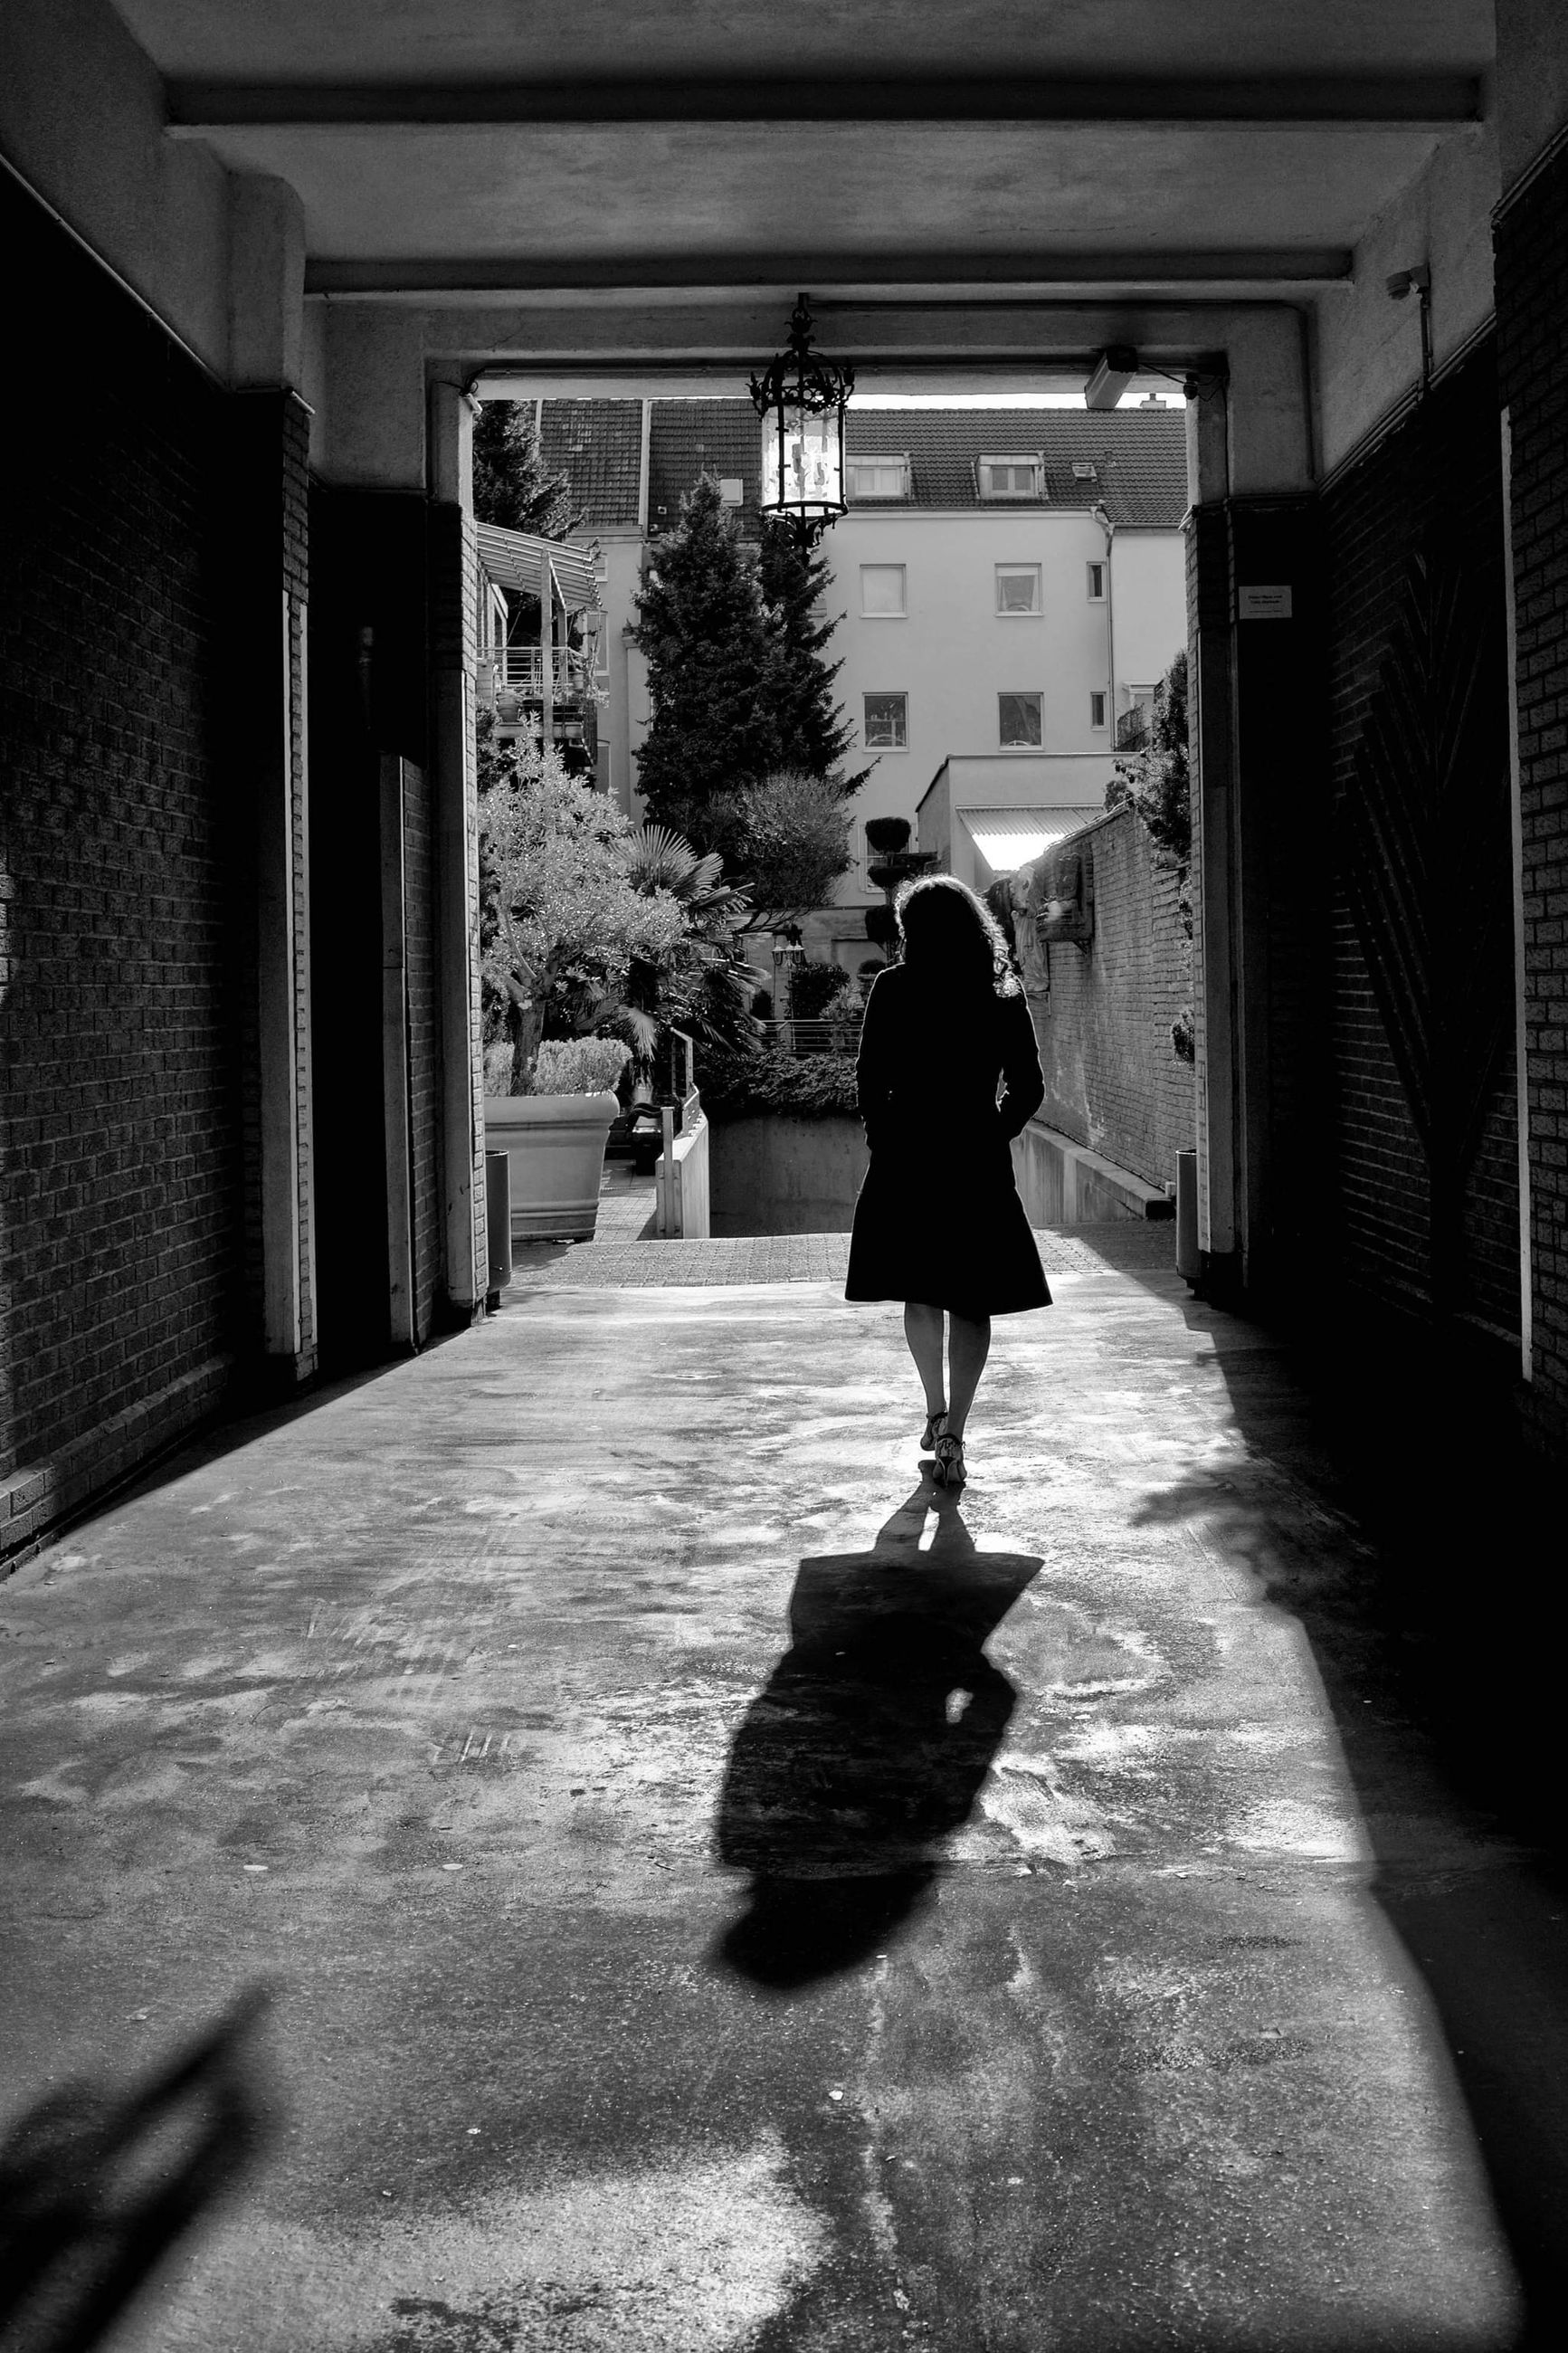 black, white, full length, one person, darkness, architecture, walking, rear view, black and white, built structure, road, light, adult, monochrome, women, shadow, snapshot, monochrome photography, street, lifestyles, building exterior, leisure activity, sunlight, day, city, standing, footpath, infrastructure, building, nature, outdoors, casual clothing, person